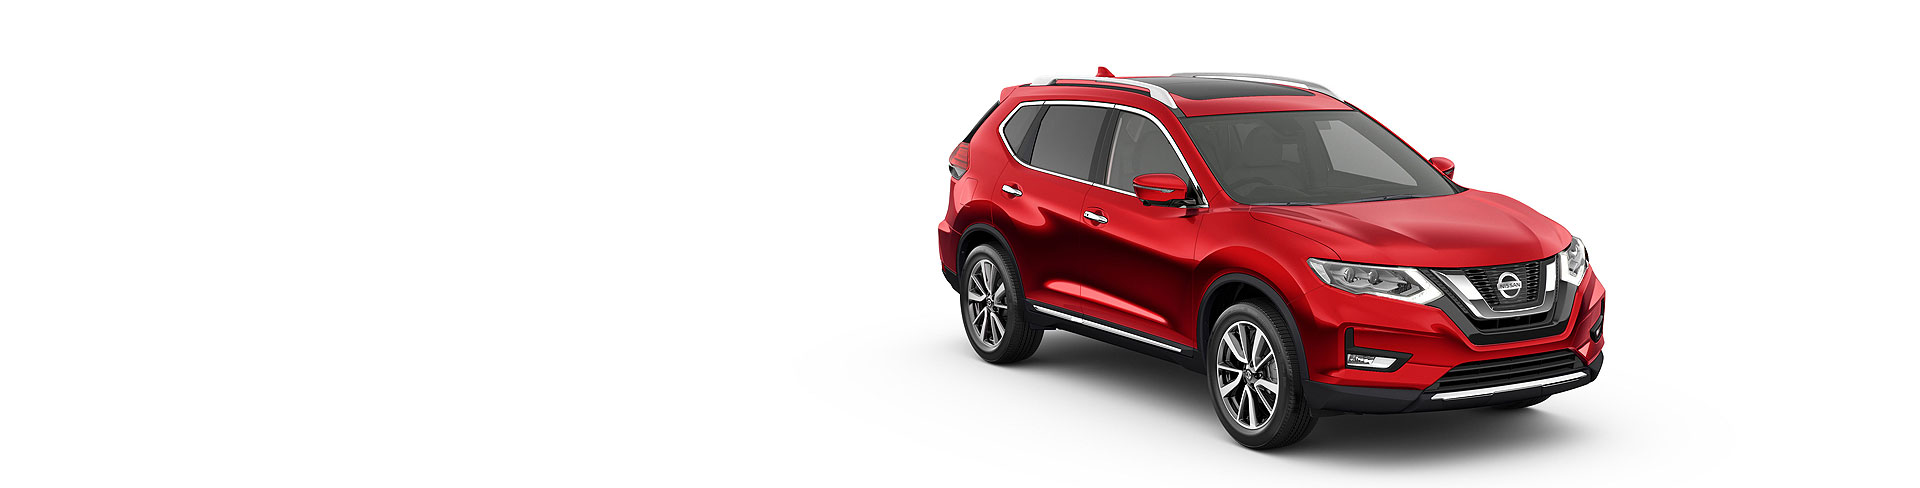 "<div class=""top-left""> <h1 class=""text-black"">NISSAN X-TRAIL </h1><h3 class=""text-black"">BOLD, VERSATILE & STYLISH </h3> <div class=""button-container""><a href=/specials>Find out more</a></div> </div>"